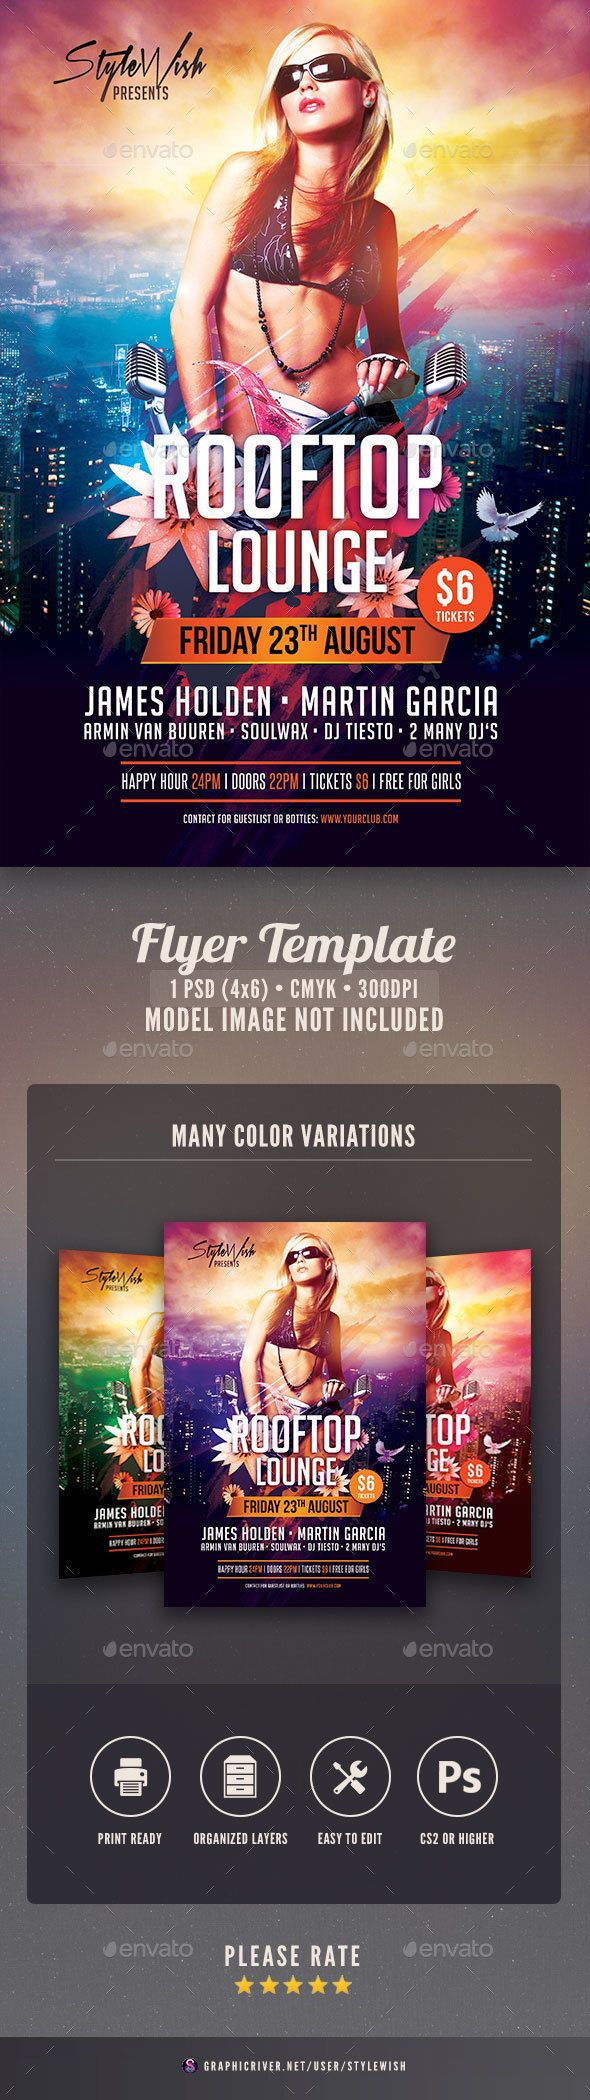 Rooftop Lounge Flyer  Rooftop Lounge Font Logo And Flyer Template